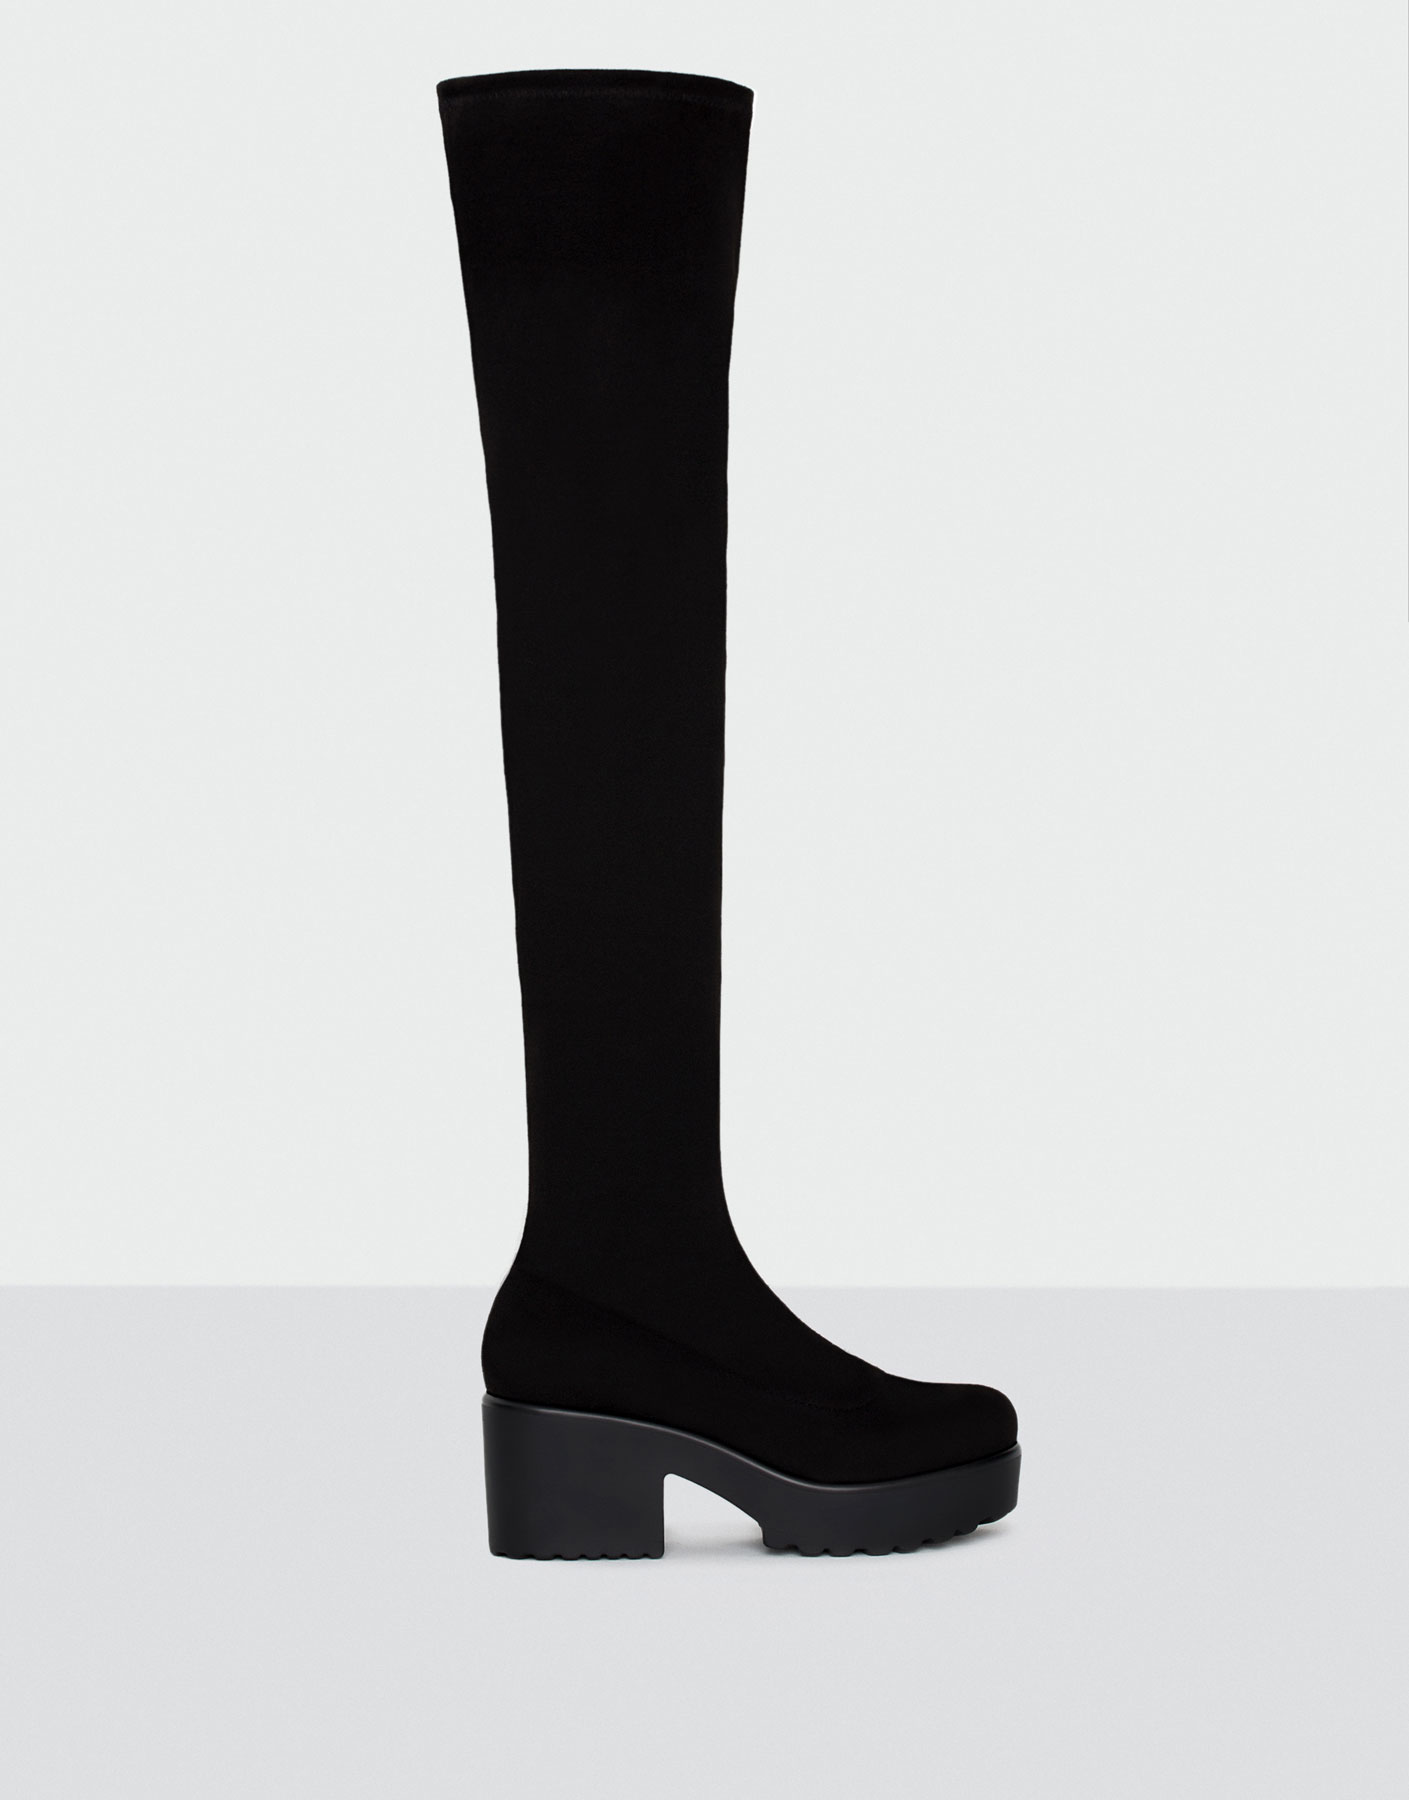 Hoher stretchstiefel